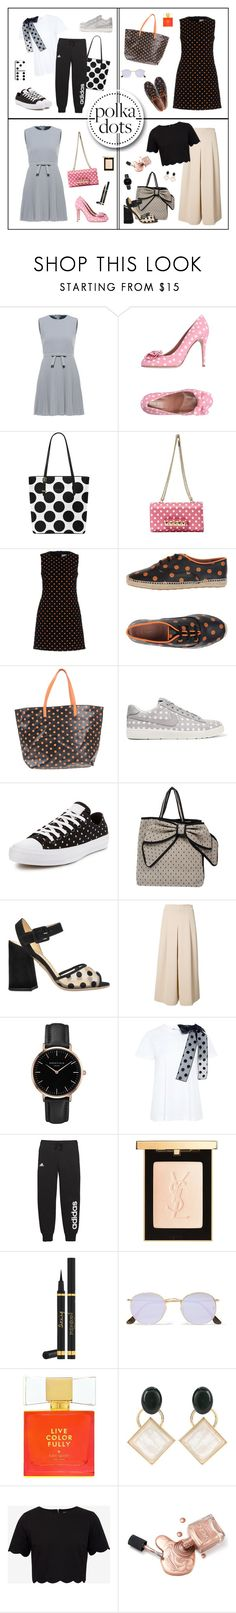 """""""So Dotty: Polka Dots"""" by shoujoandmore ❤ liked on Polyvore featuring RED Valentino, Valentino, NIKE, Converse, Charlotte Olympia, TIBI, ROSEFIELD, adidas, Yves Saint Laurent and Ray-Ban"""